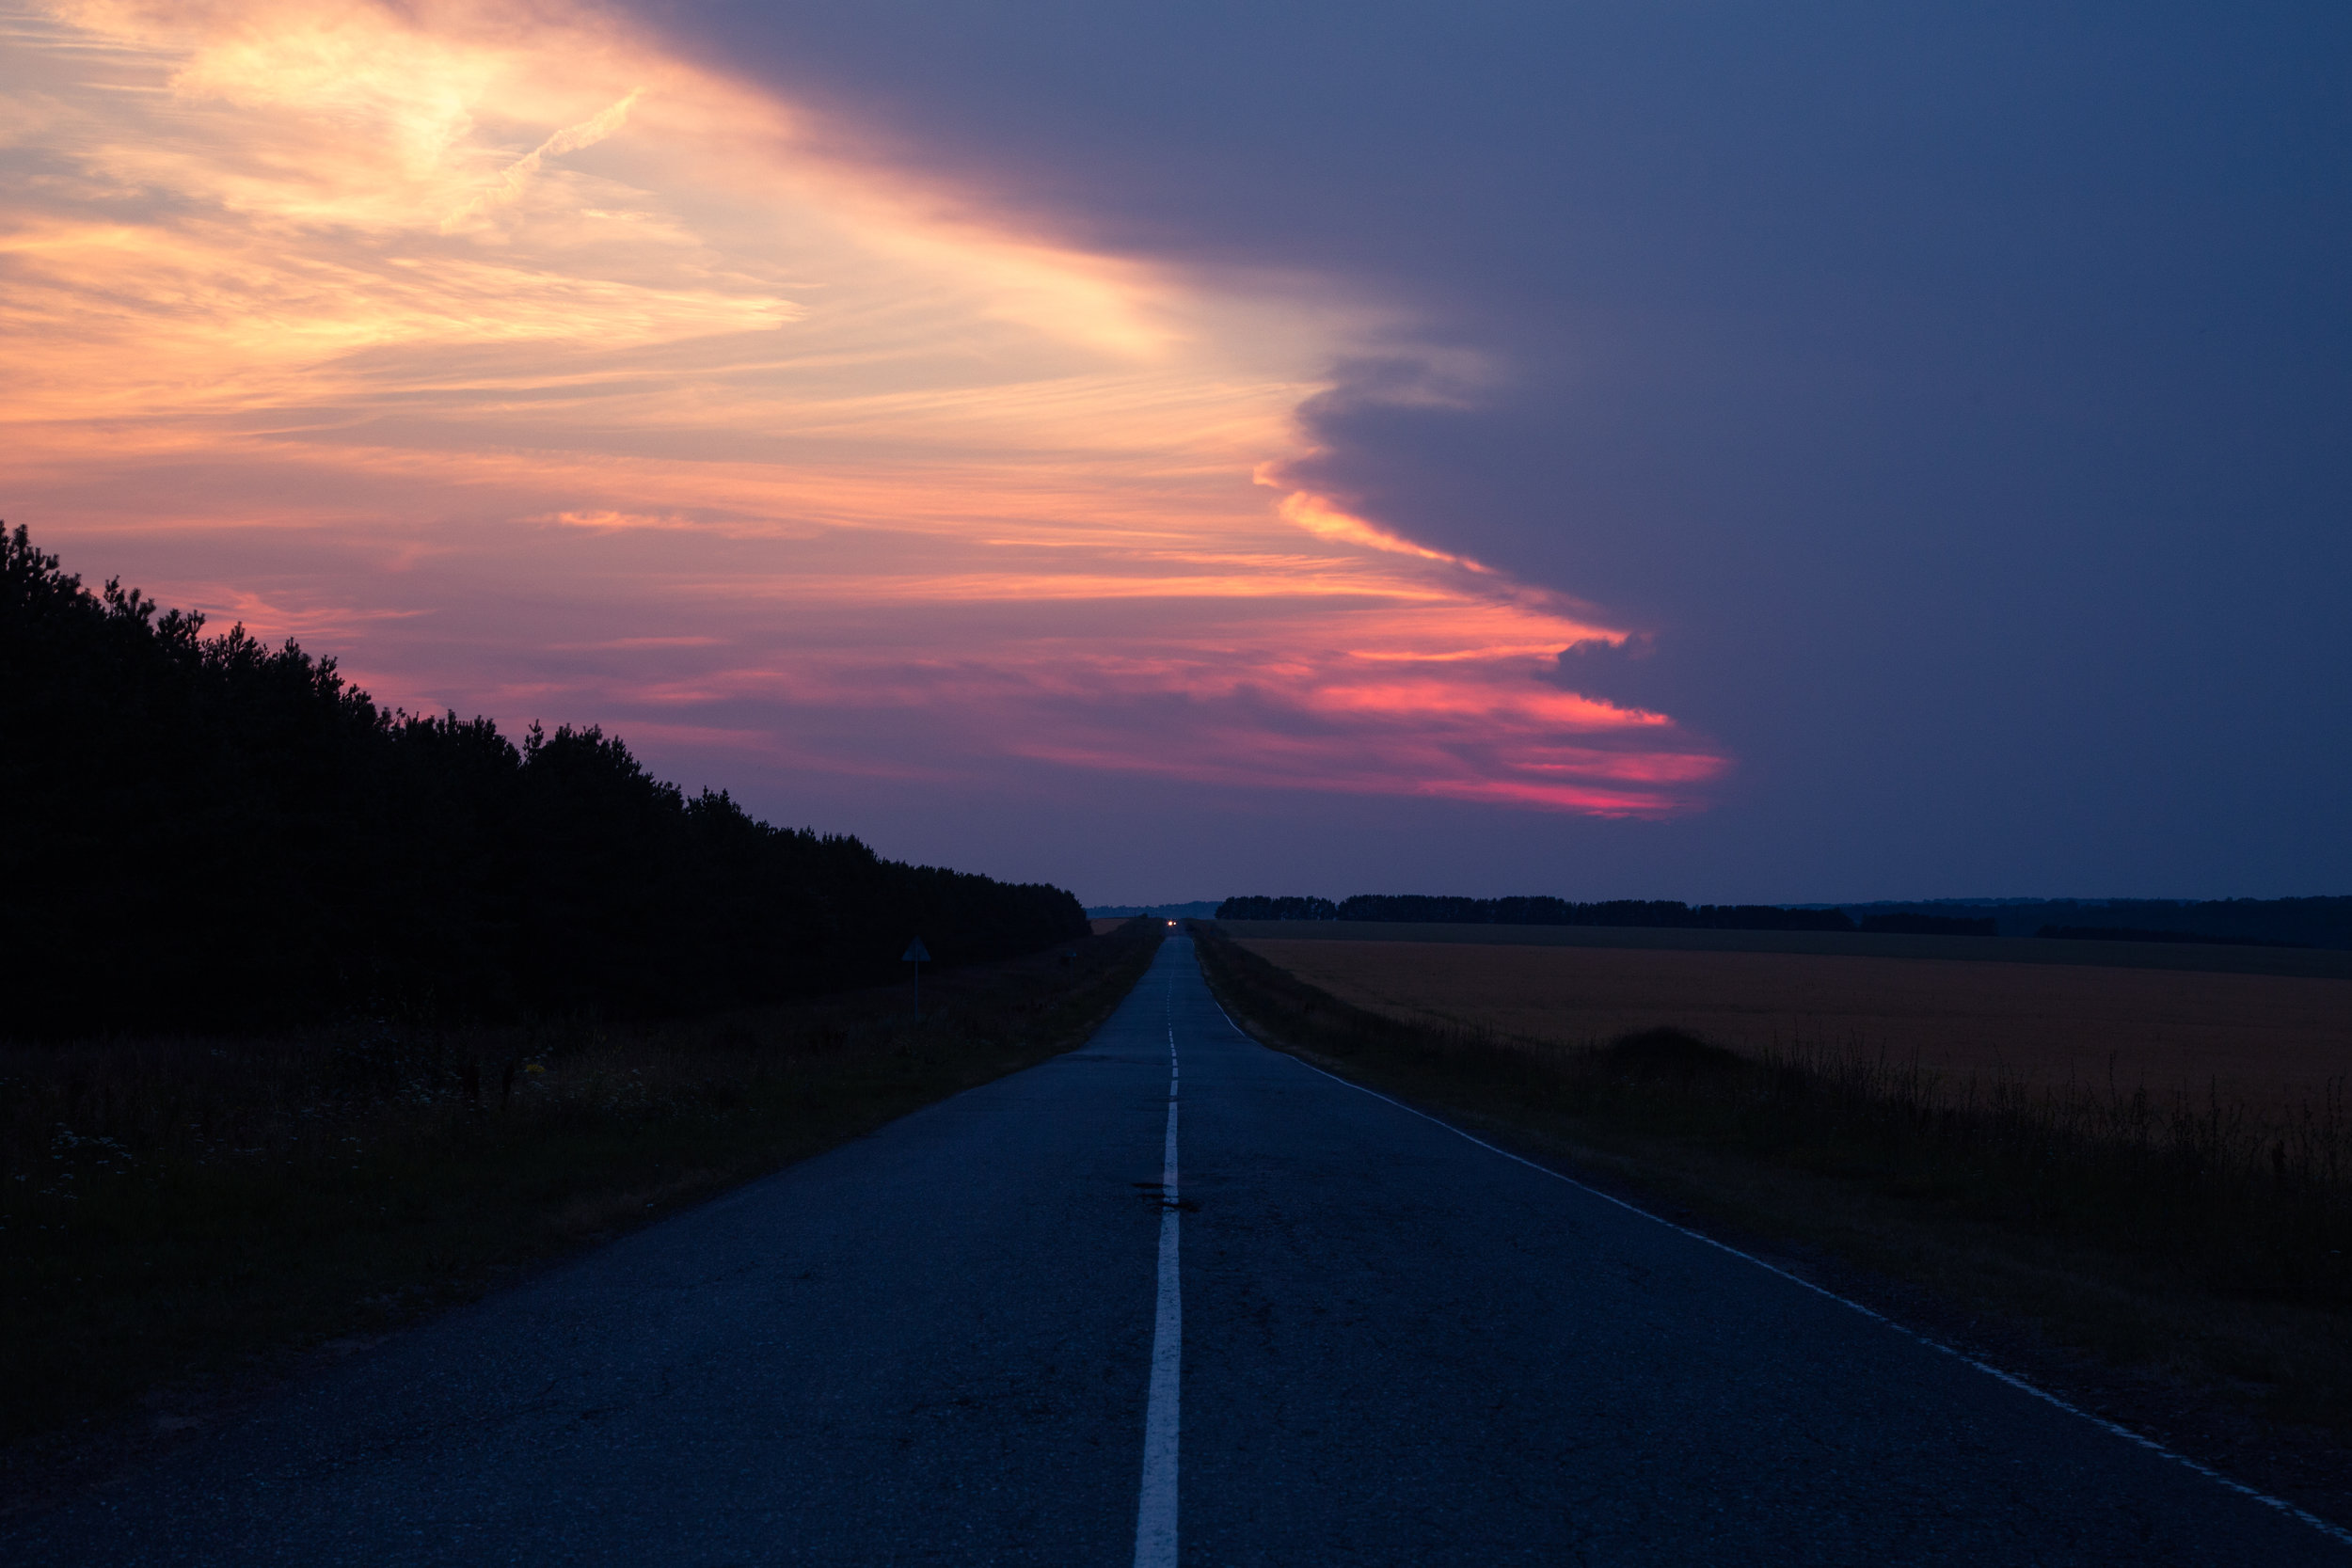 A sunset over a rural Russian road. This road leads to a bigger village nearby called Sovetskaya.